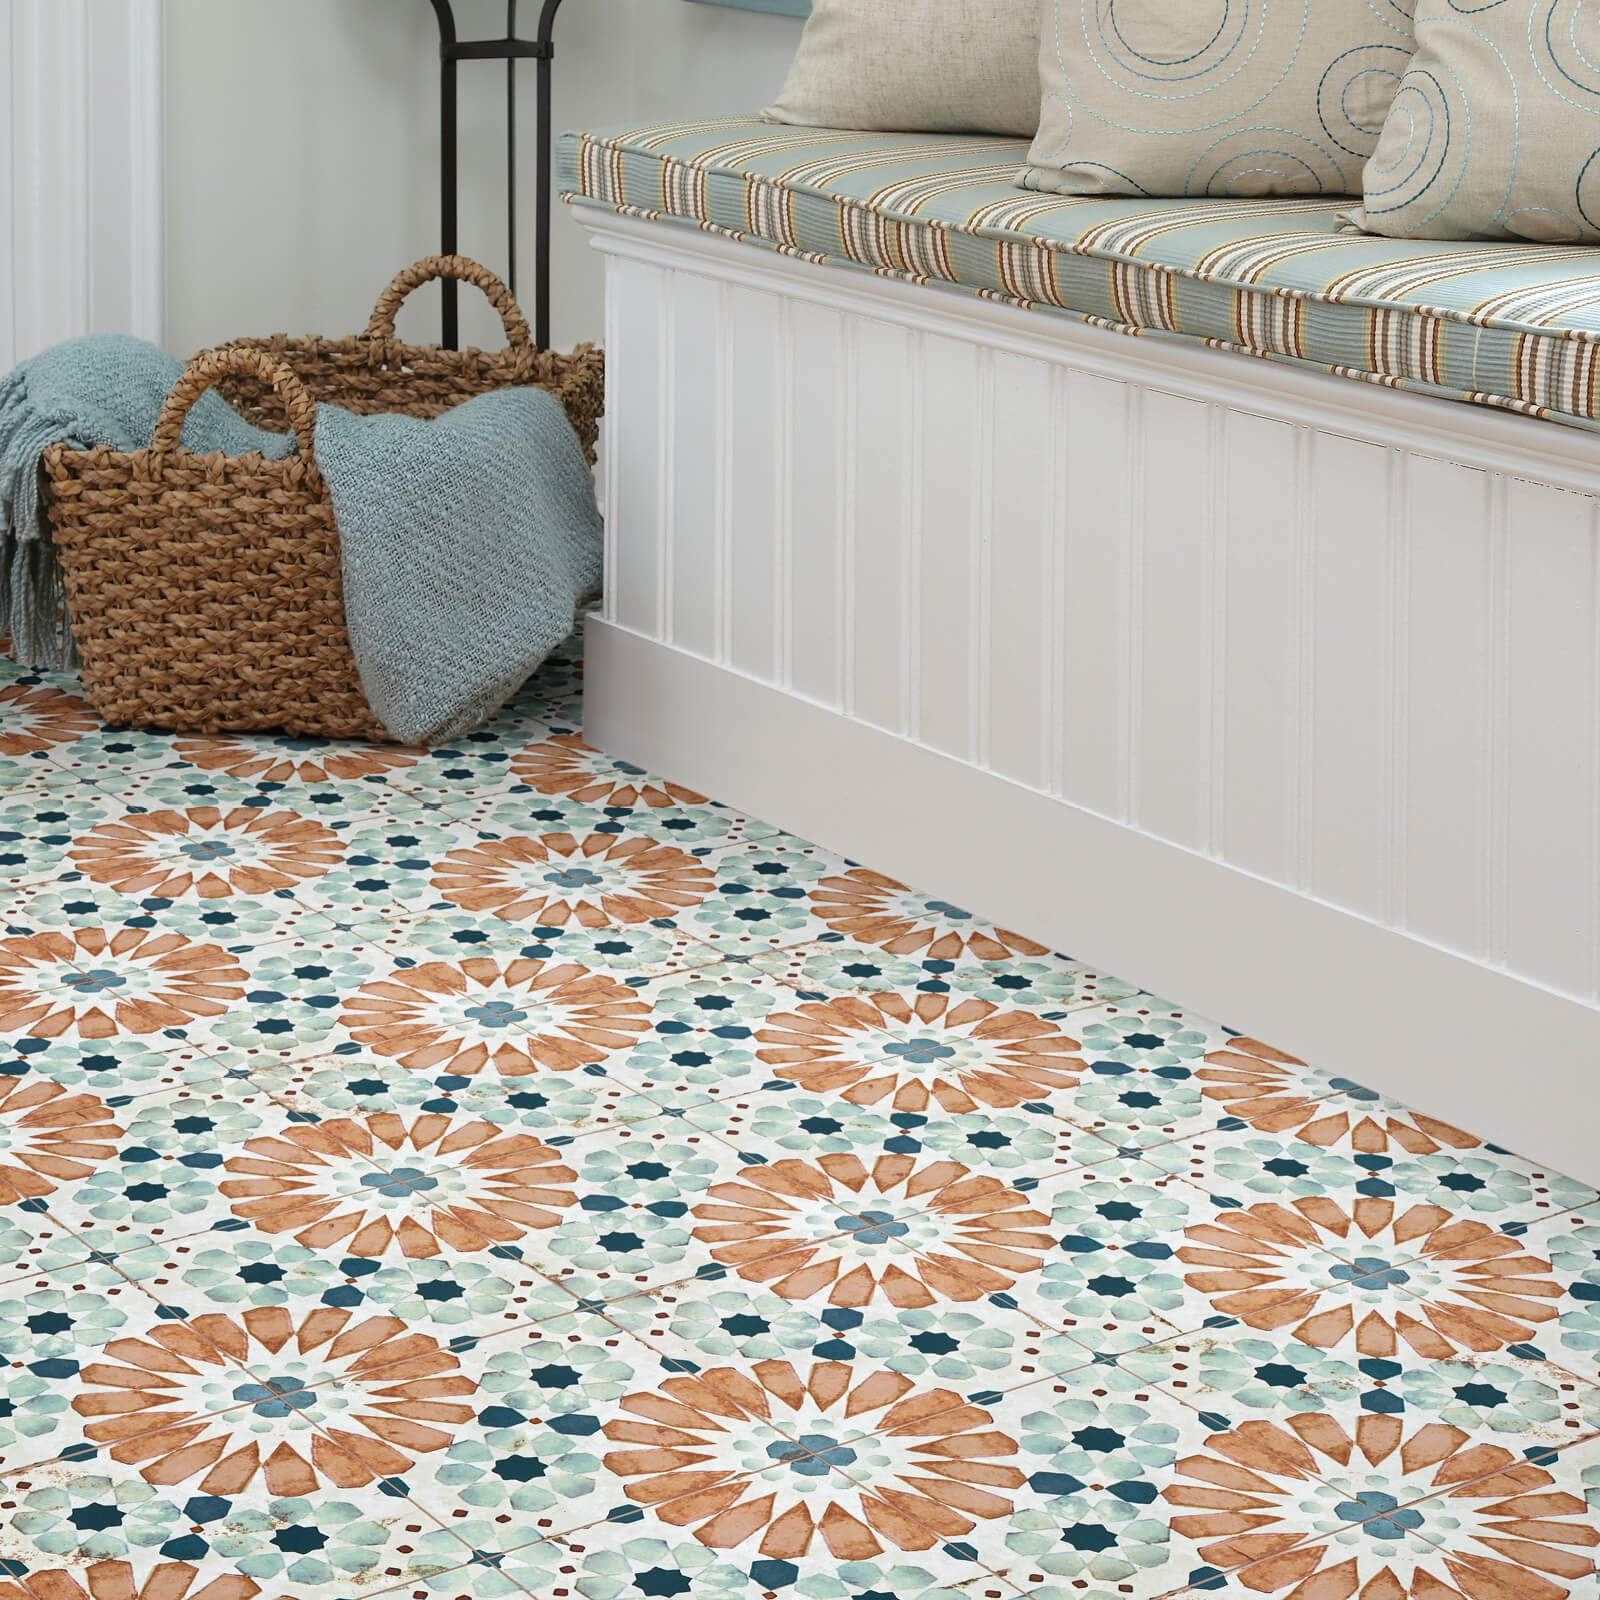 Title Designs for Home | Leicester Flooring